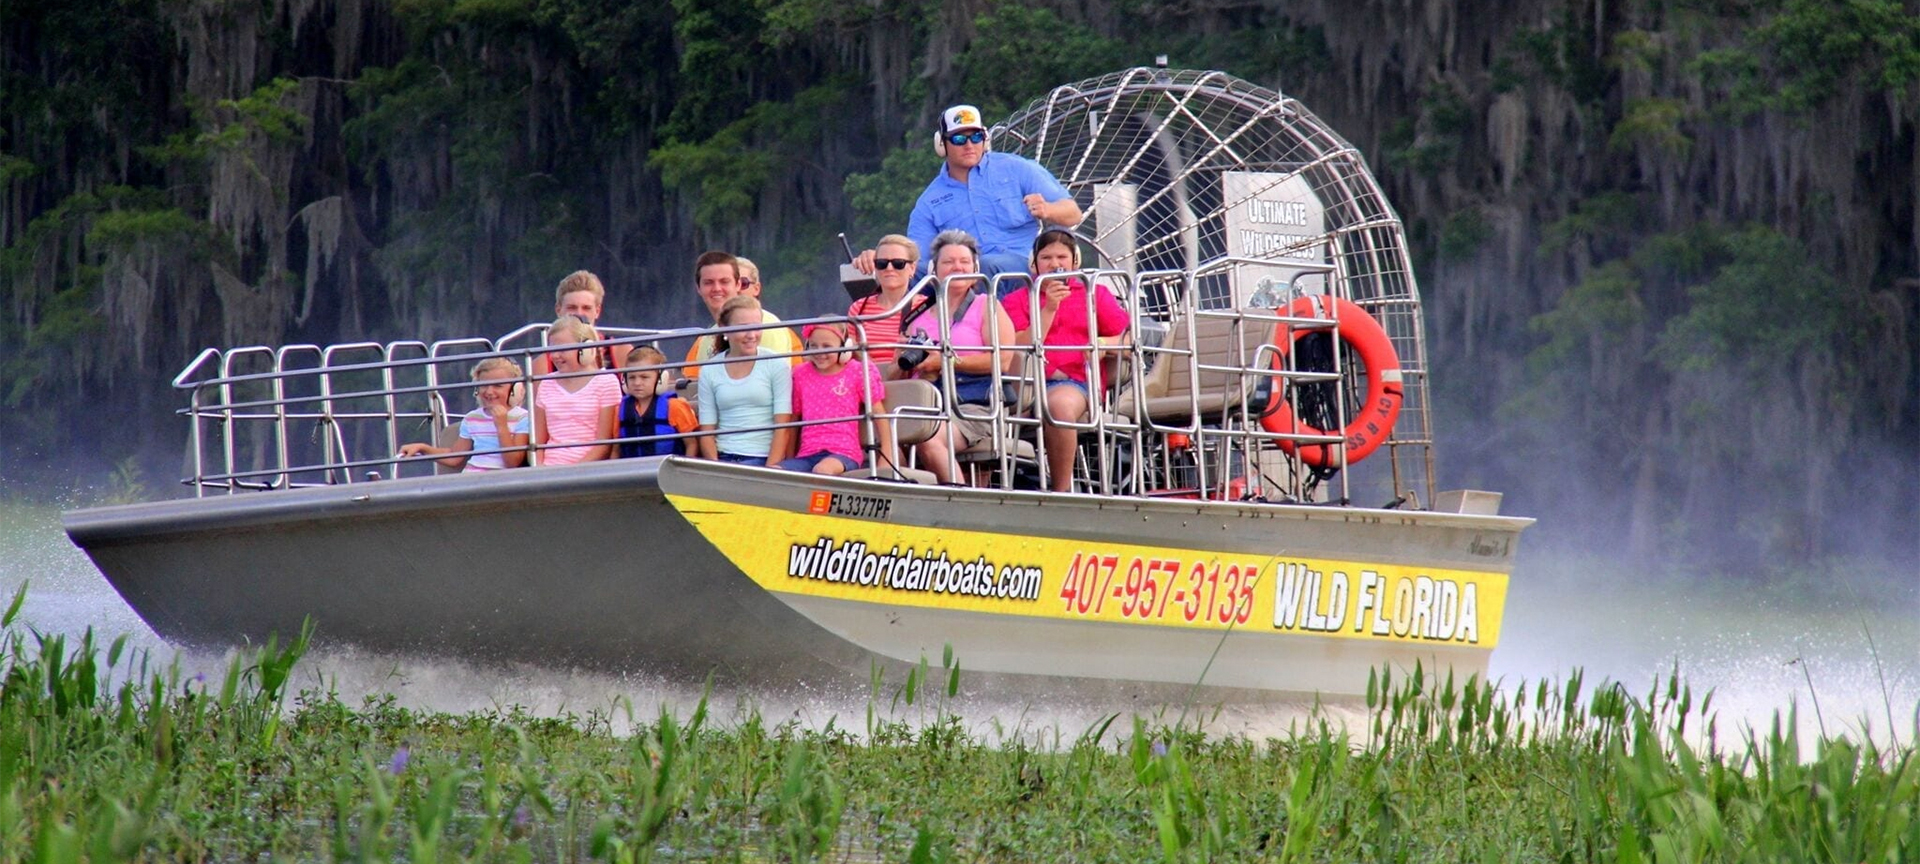 The characteristic flat-bottomed design of the airboat, in conjunction with the fact that there are no operating parts below the waterline, allows for easy navigation through shallow swamps and marshes; in canals, rivers, and lakes; and on ice and frozen lakes. This design also makes it ideal for flood and ice rescue operations. The airboat is pushed forward by the propeller, which produces a rearward column of air behind it - the resulting prop wash averages 150 miles per hour (241 km/h).